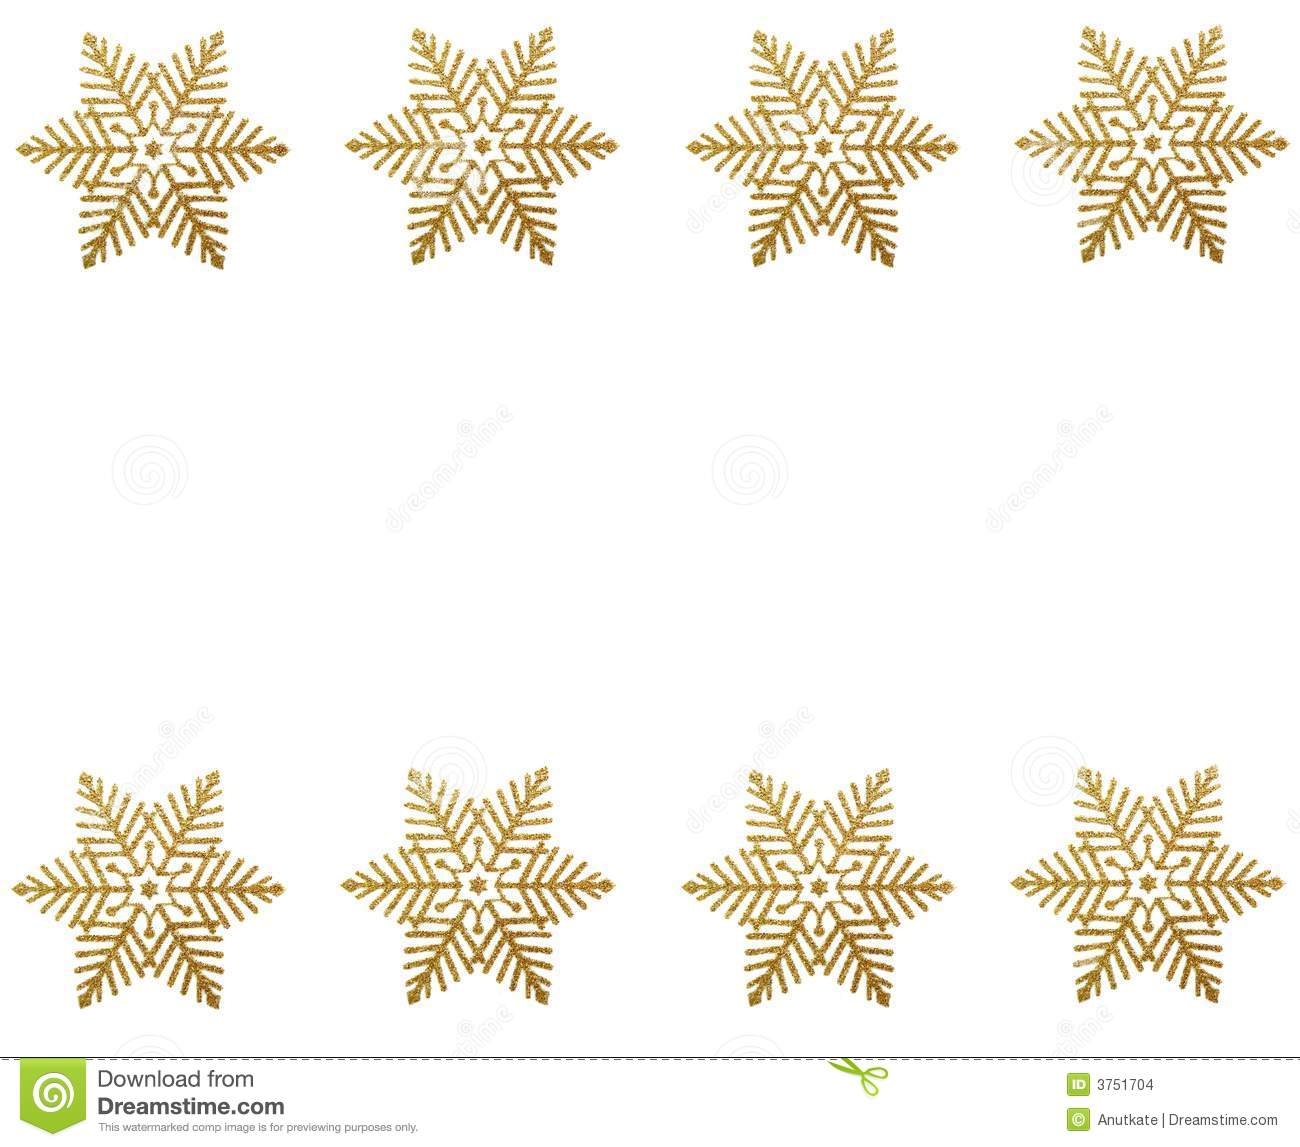 Winter border - gold snow stars on white background .